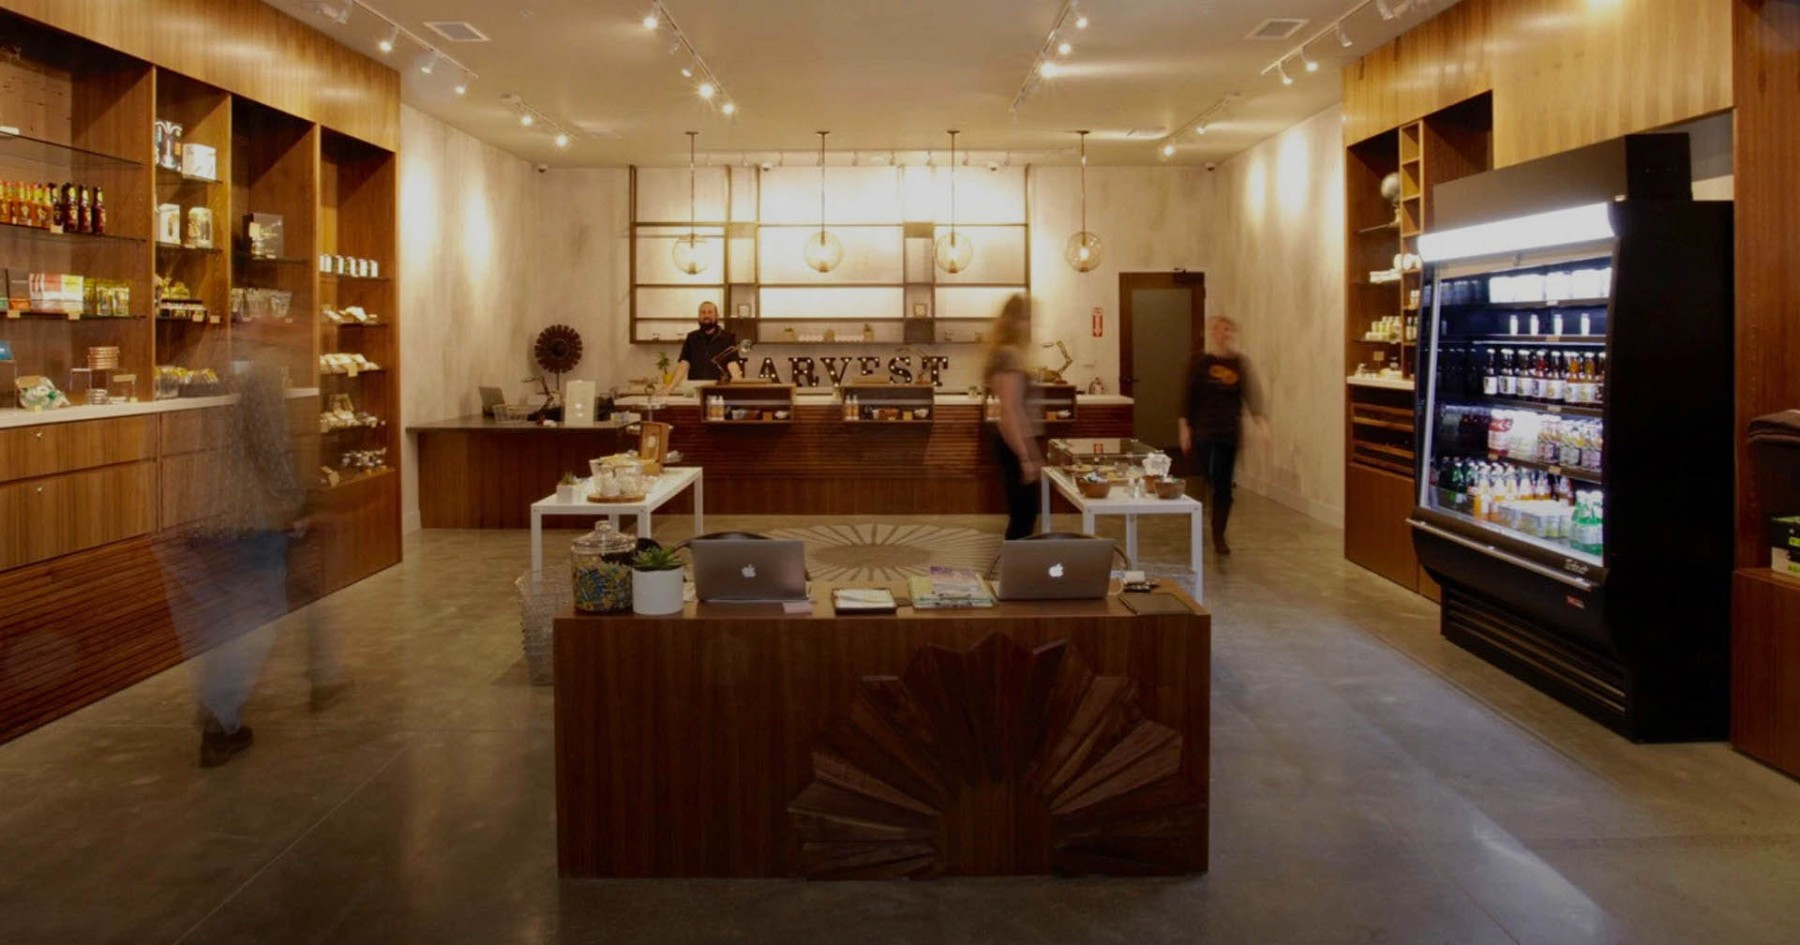 Finally, a Pot Shop for Adults